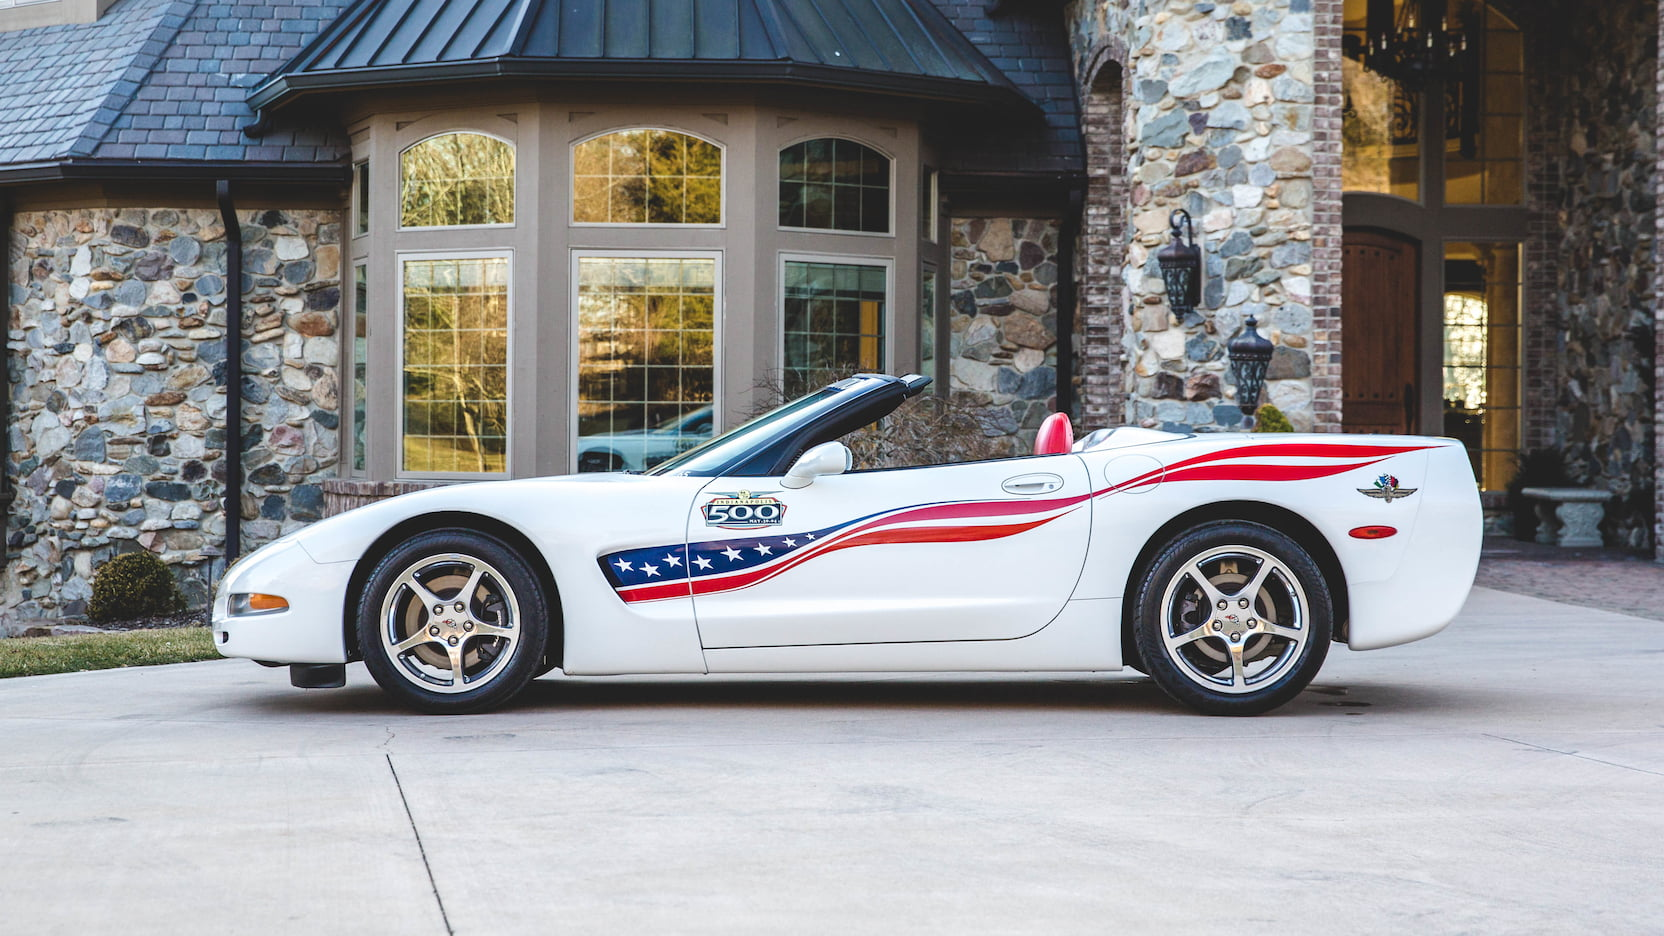 2004 Chevrolet Corvette Pace Car Version 2